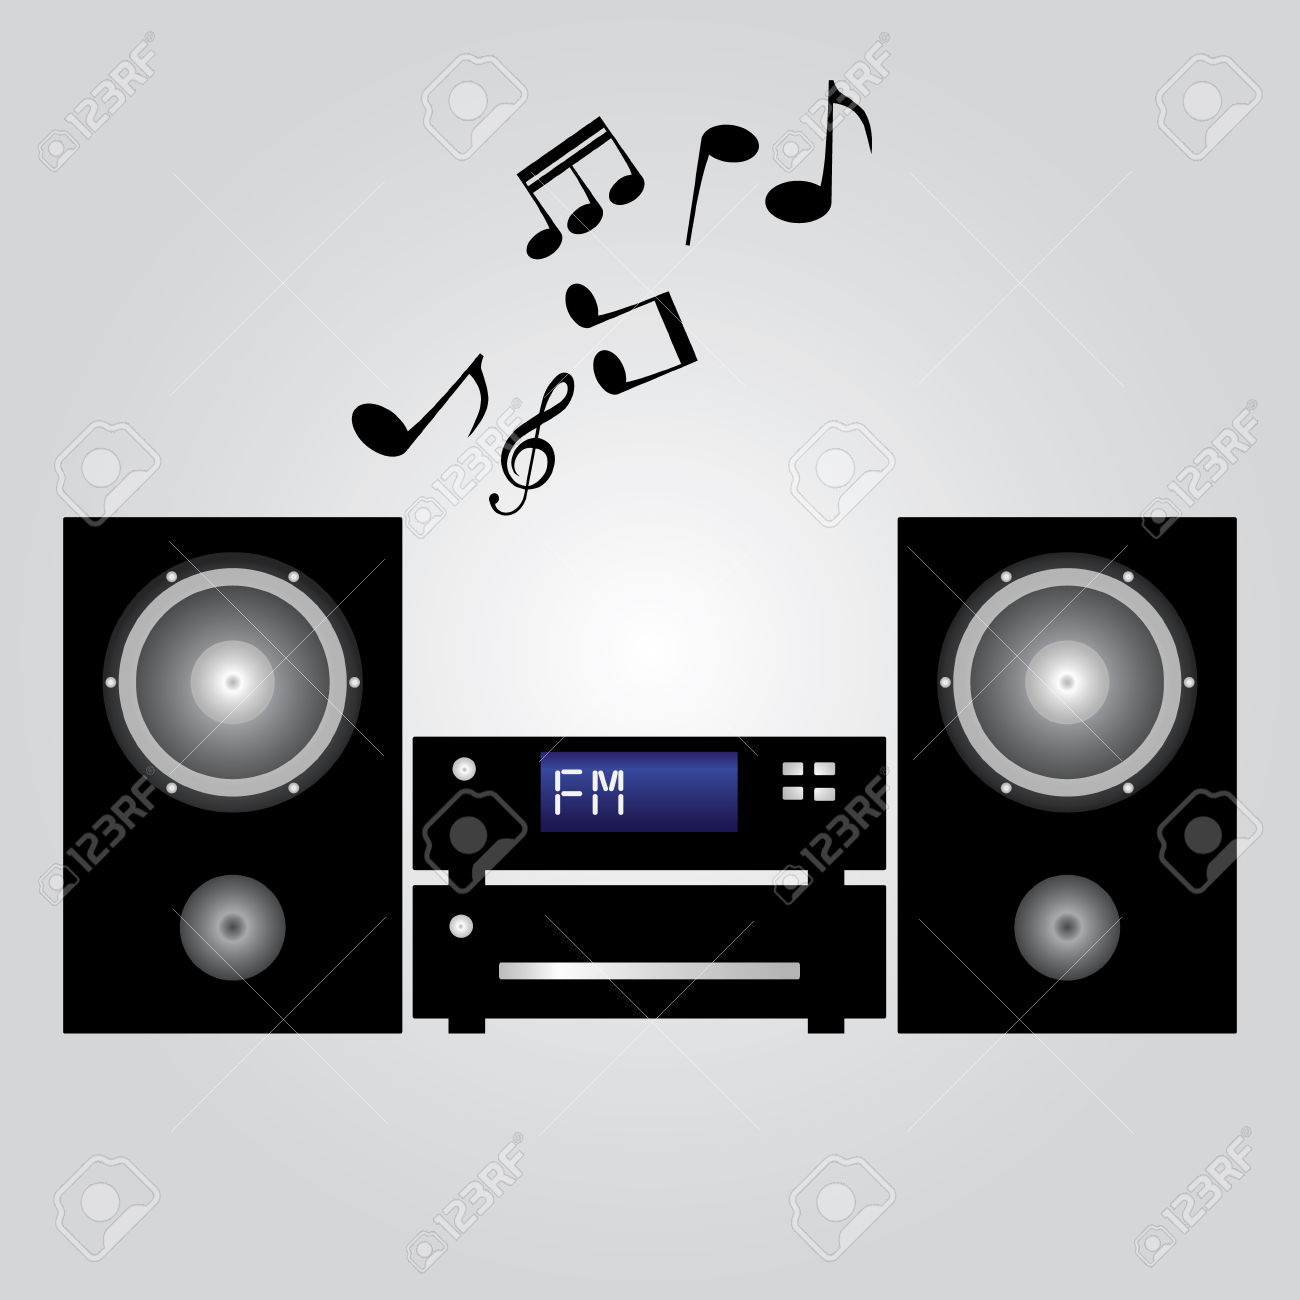 Hifi System Eps10 Royalty Free Cliparts, Vectors, And Stock.